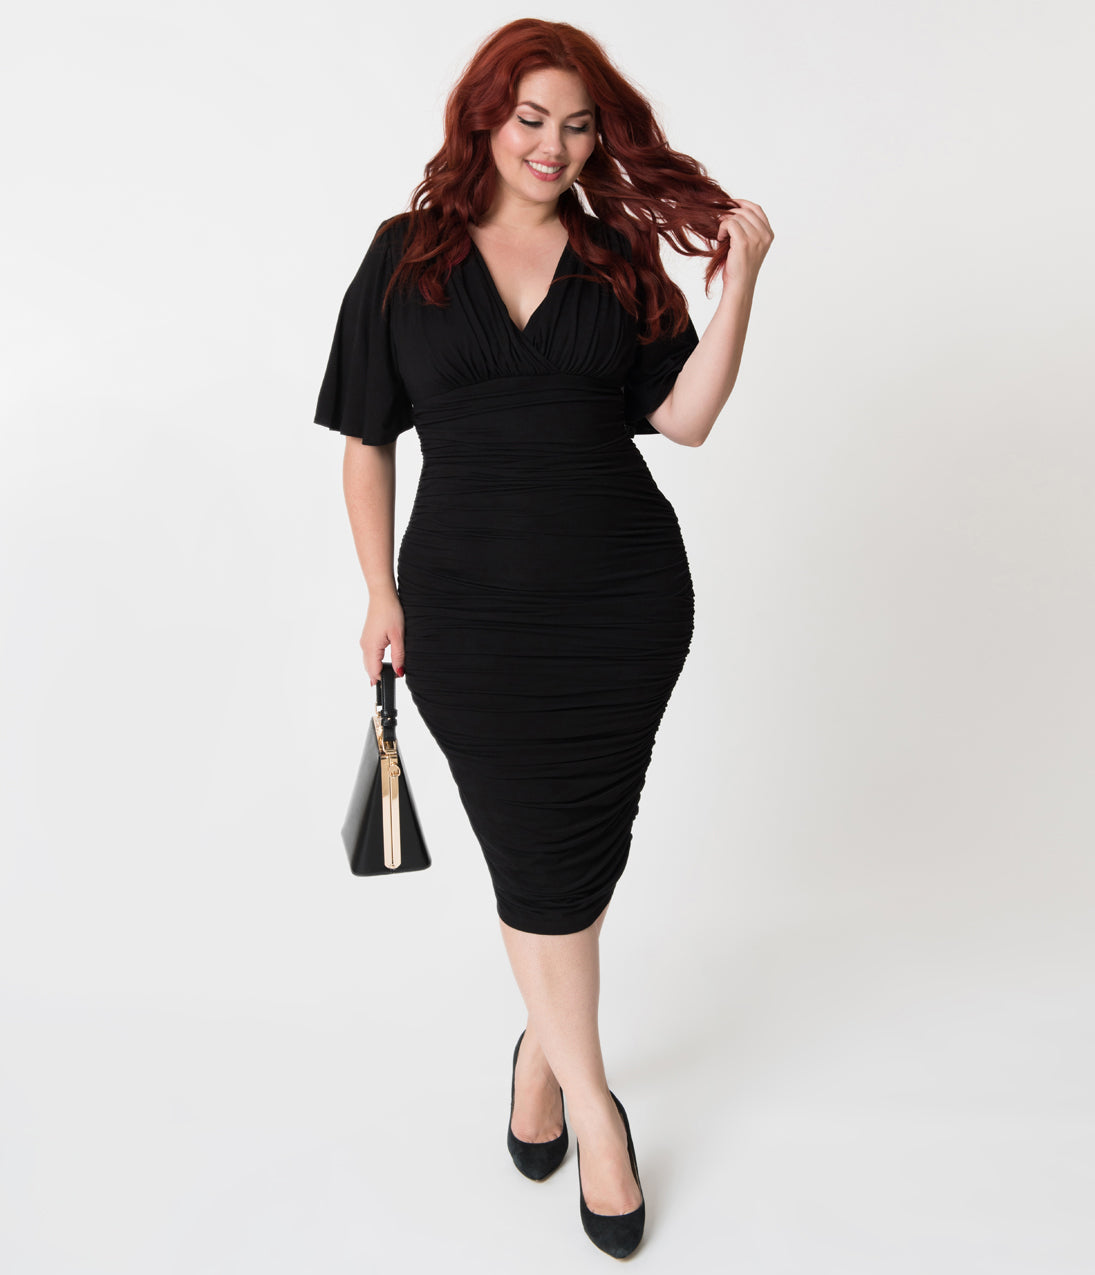 500 Vintage Style Dresses for Sale | Vintage Inspired Dresses Plus Size Vintage Style Black Ruched Flutter Sleeve Rumor Wiggle Dress $108.00 AT vintagedancer.com